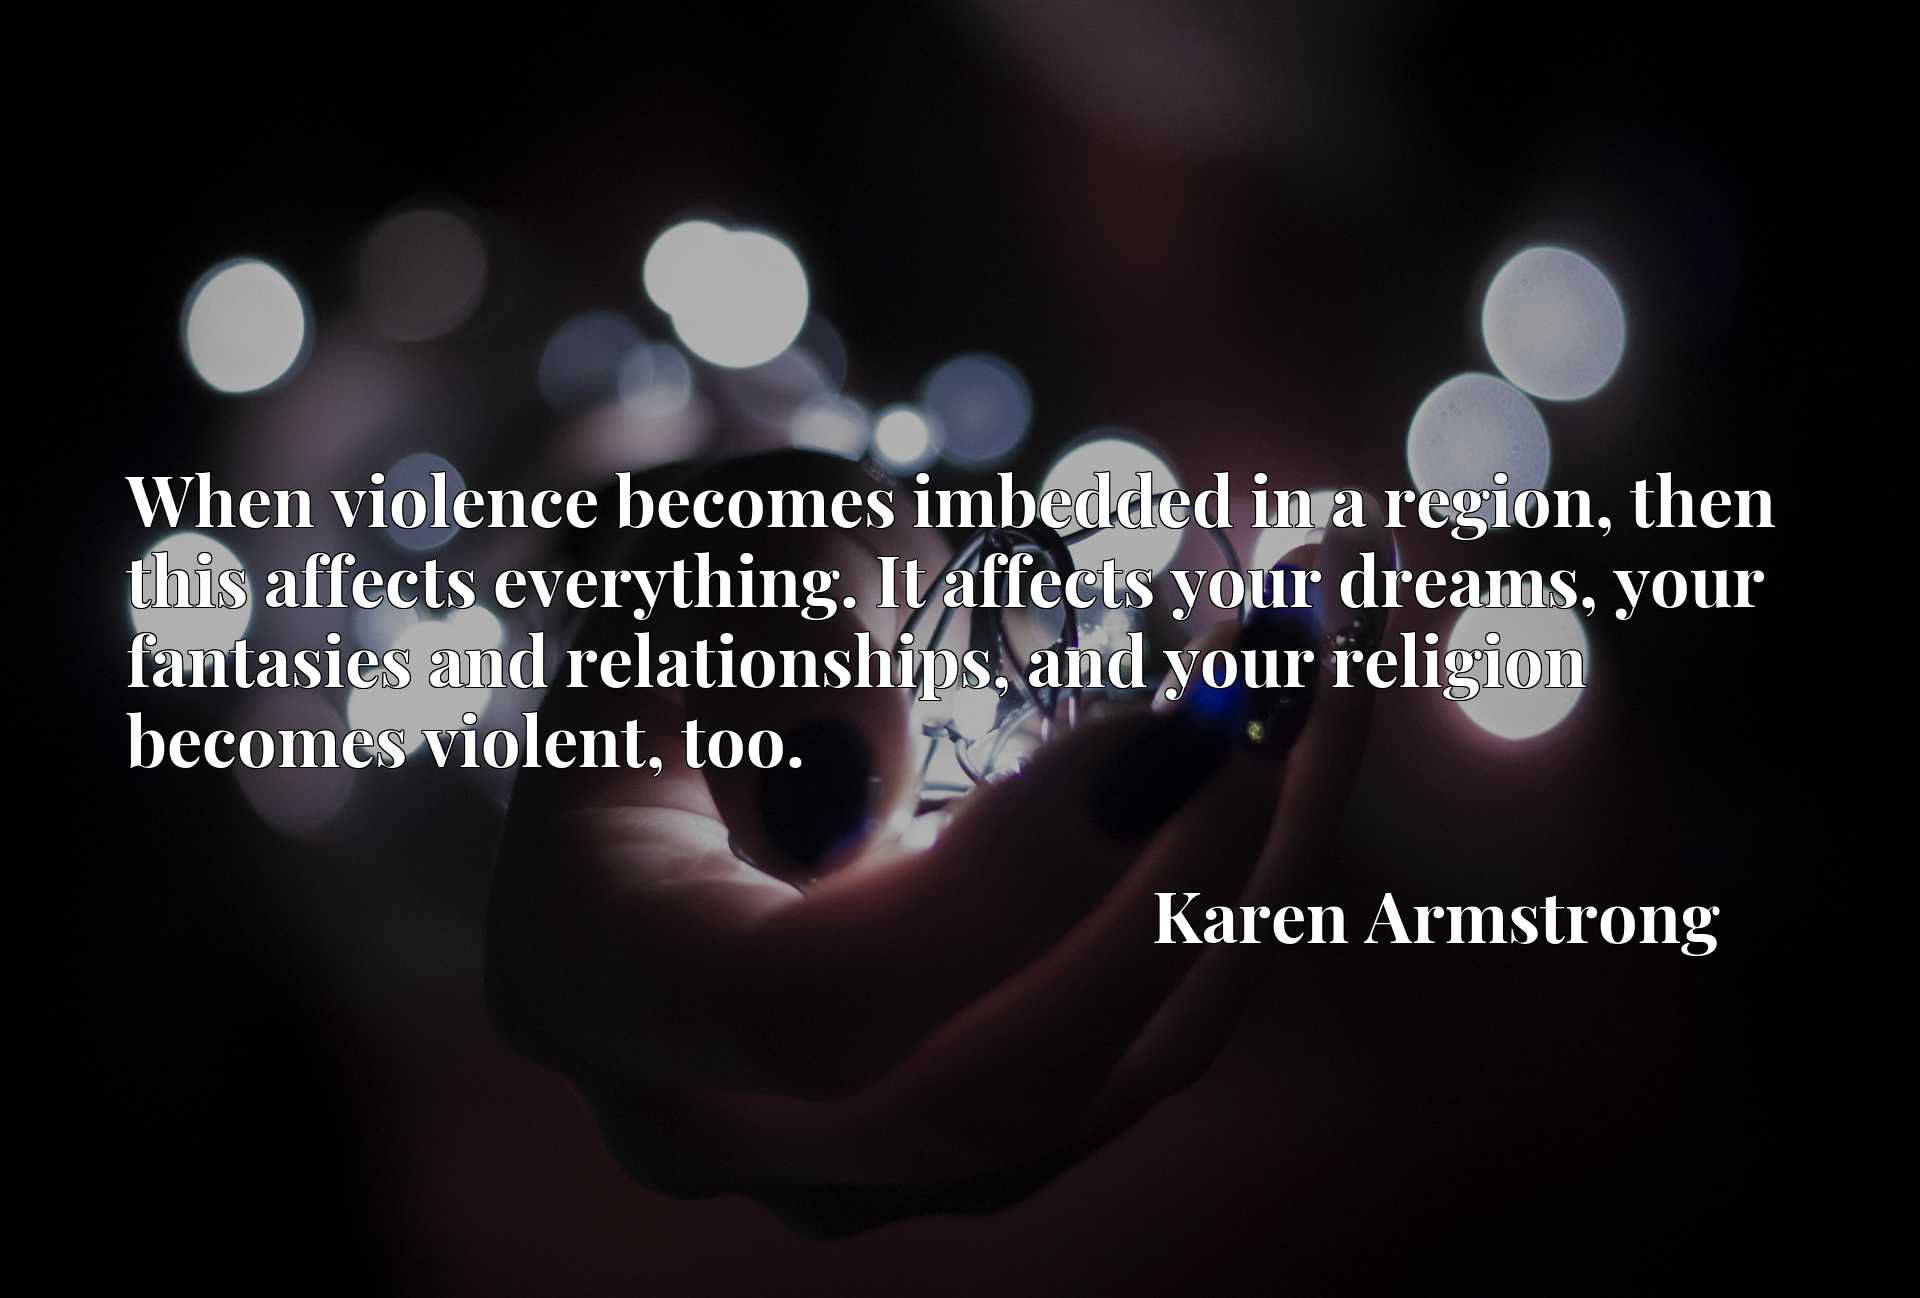 When violence becomes imbedded in a region, then this affects everything. It affects your dreams, your fantasies and relationships, and your religion becomes violent, too.